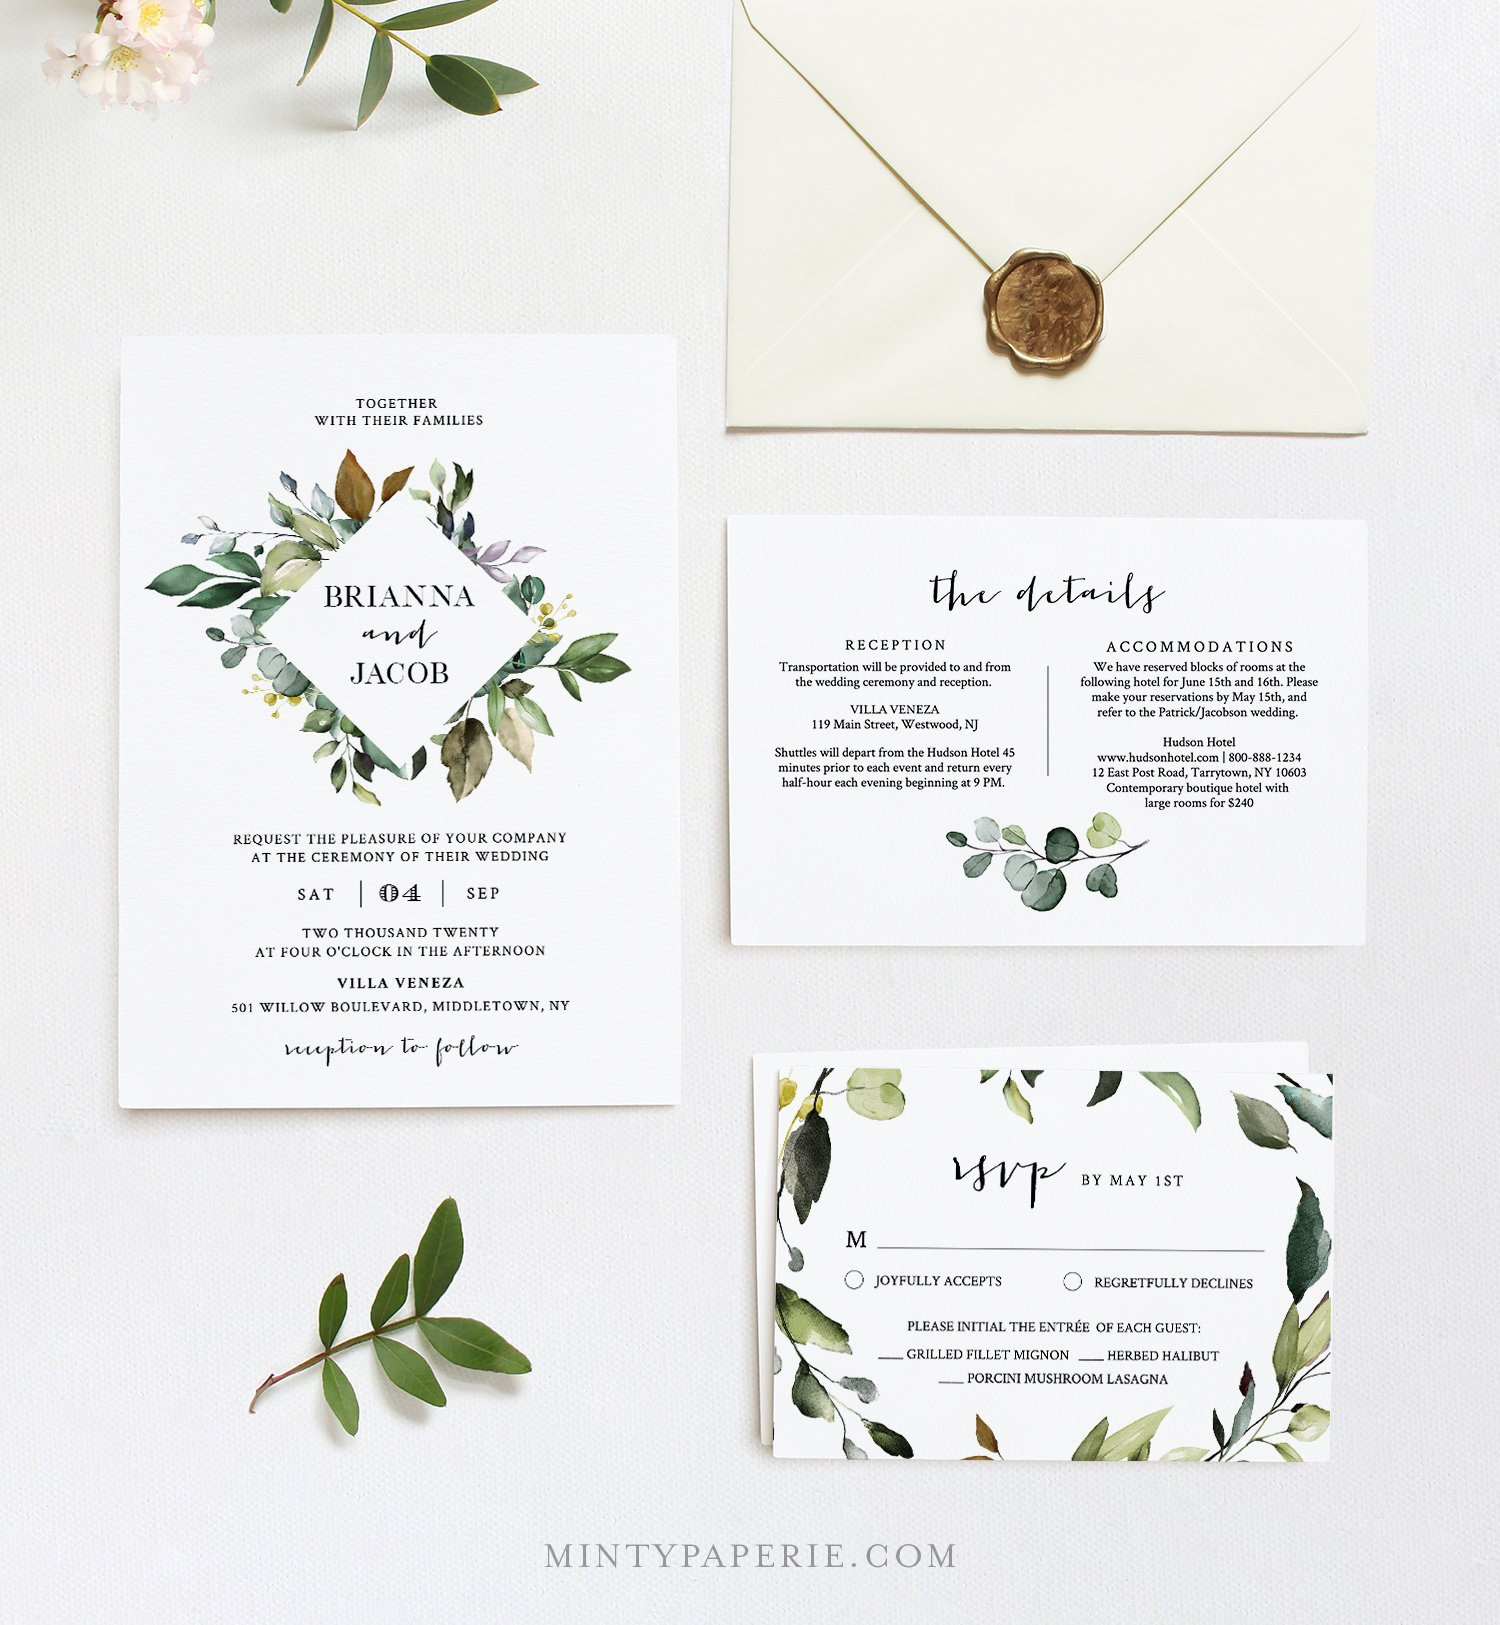 greenery wedding invitation template printable bohemian wedding invite rsvp details 100 editable text instant download diy 005a